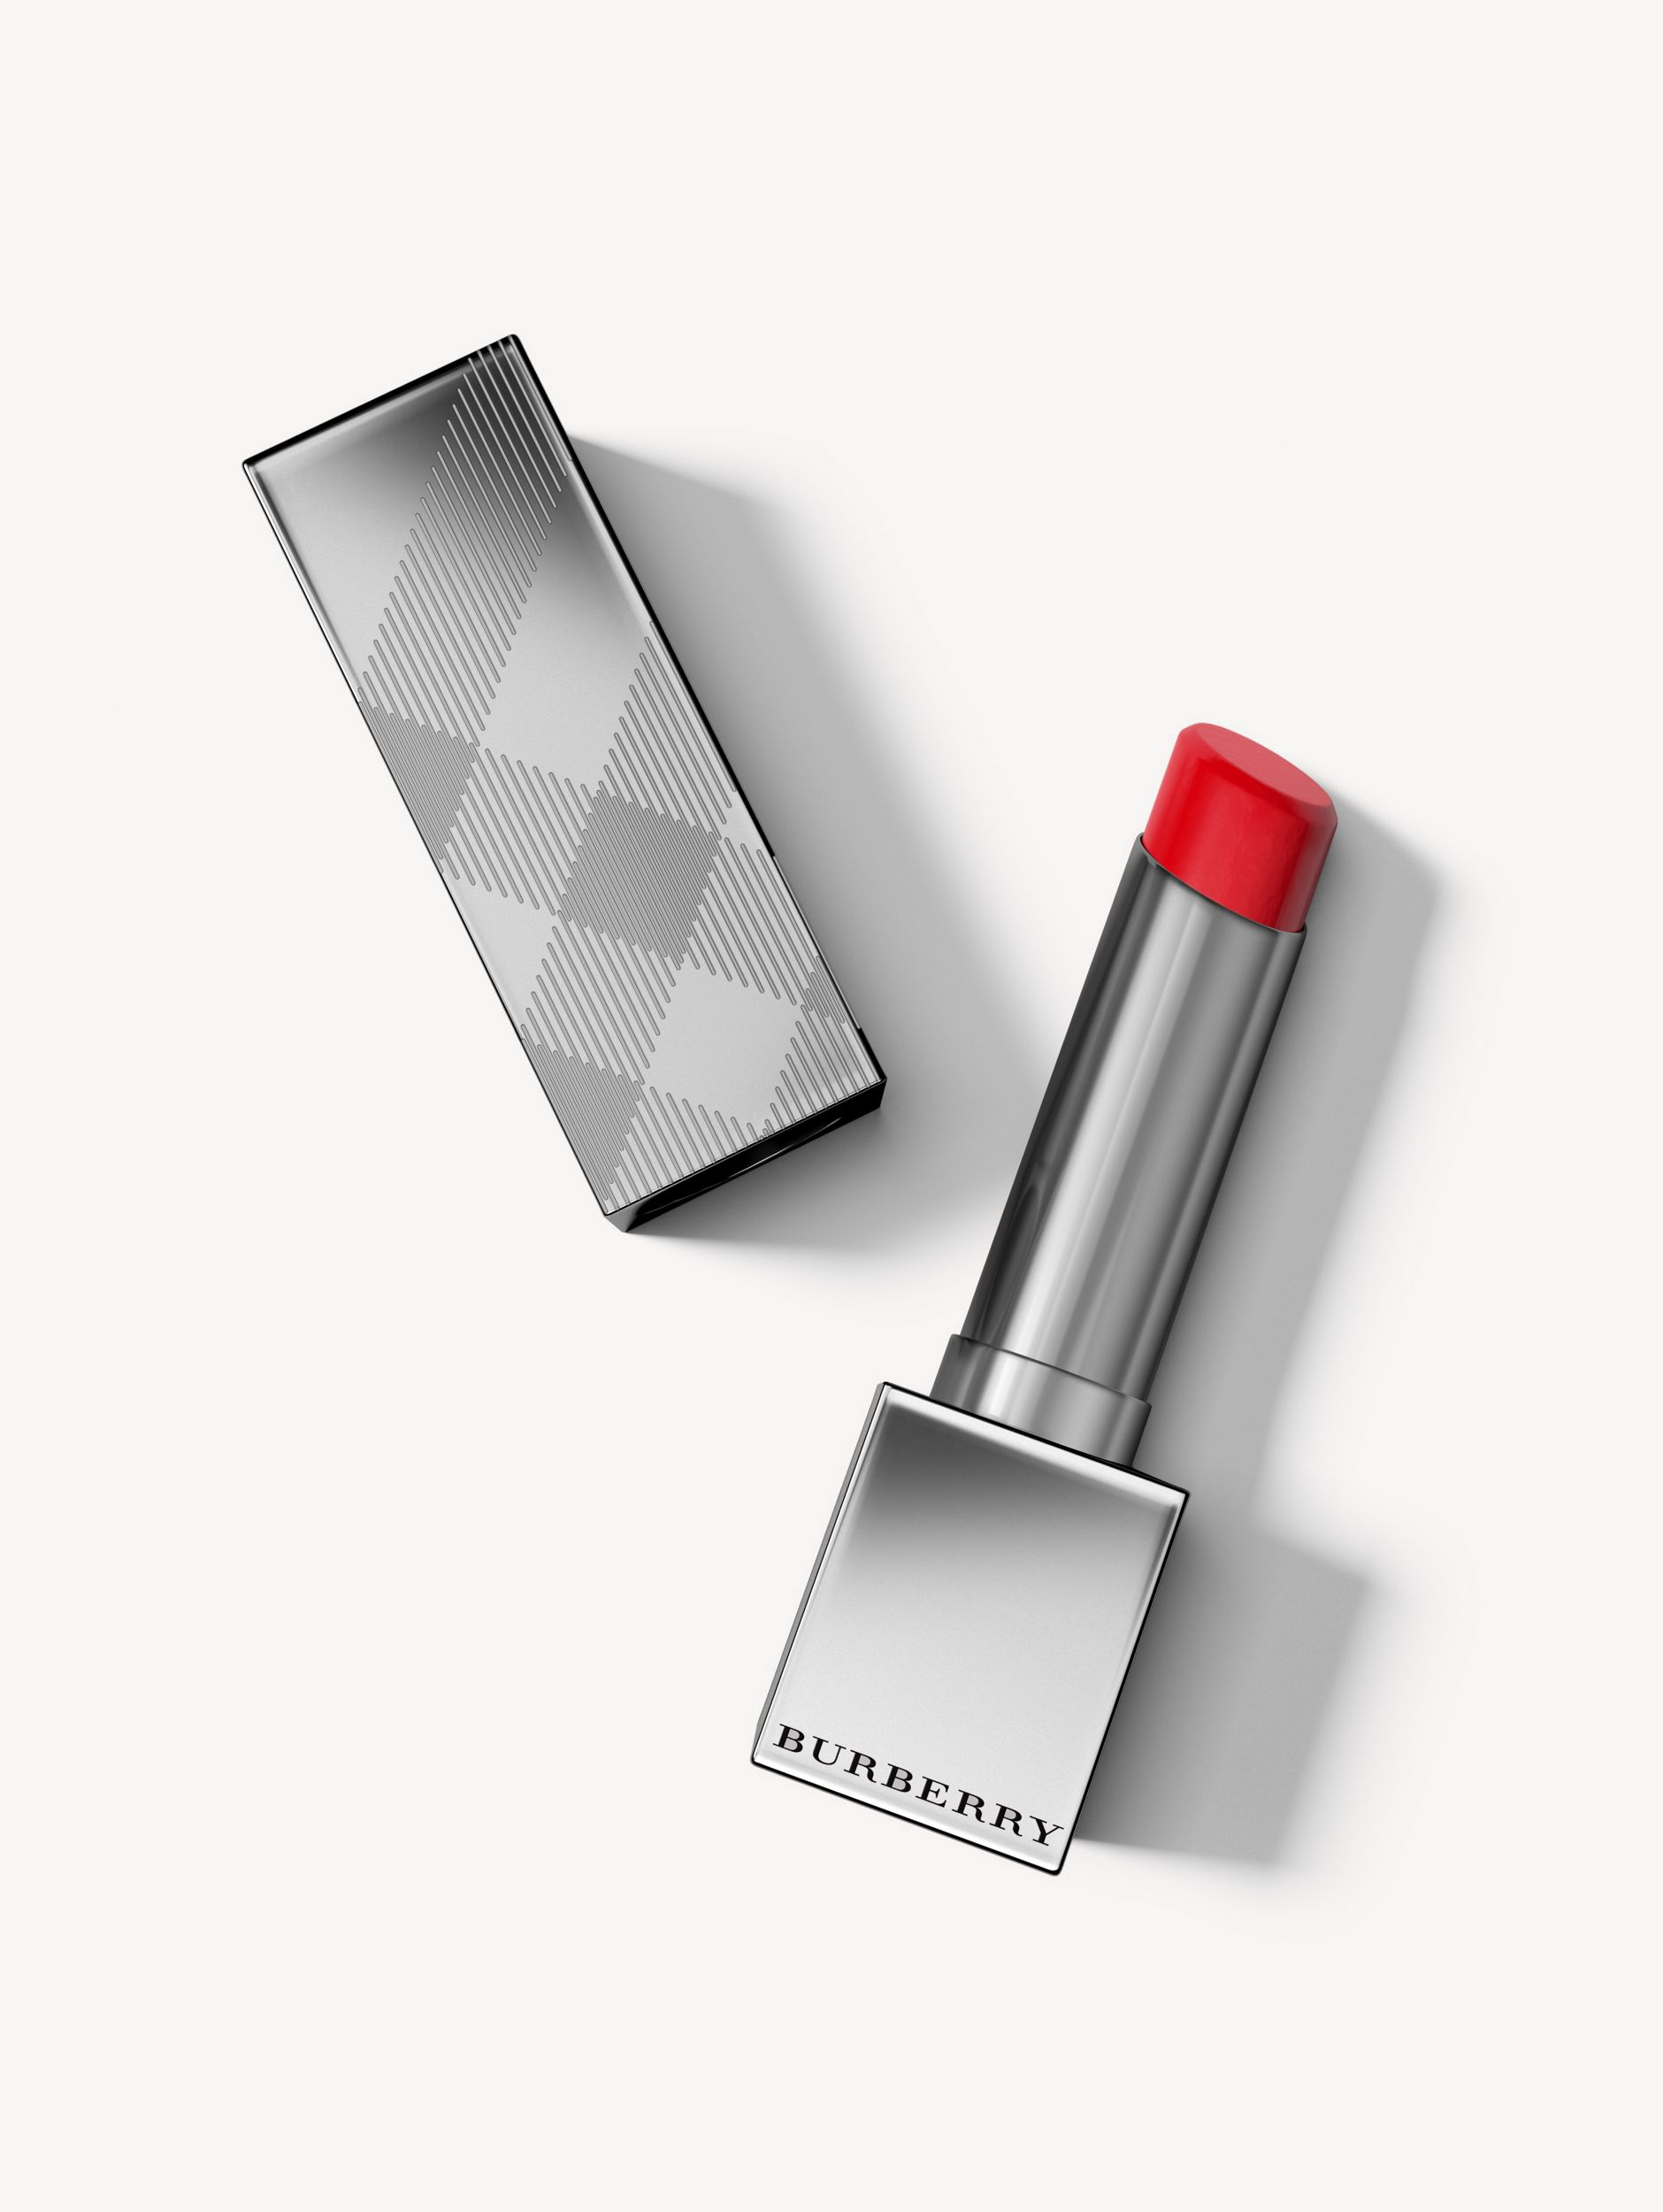 Burberry Kisses Sheer – Military Red No.305 - Women | Burberry - 1